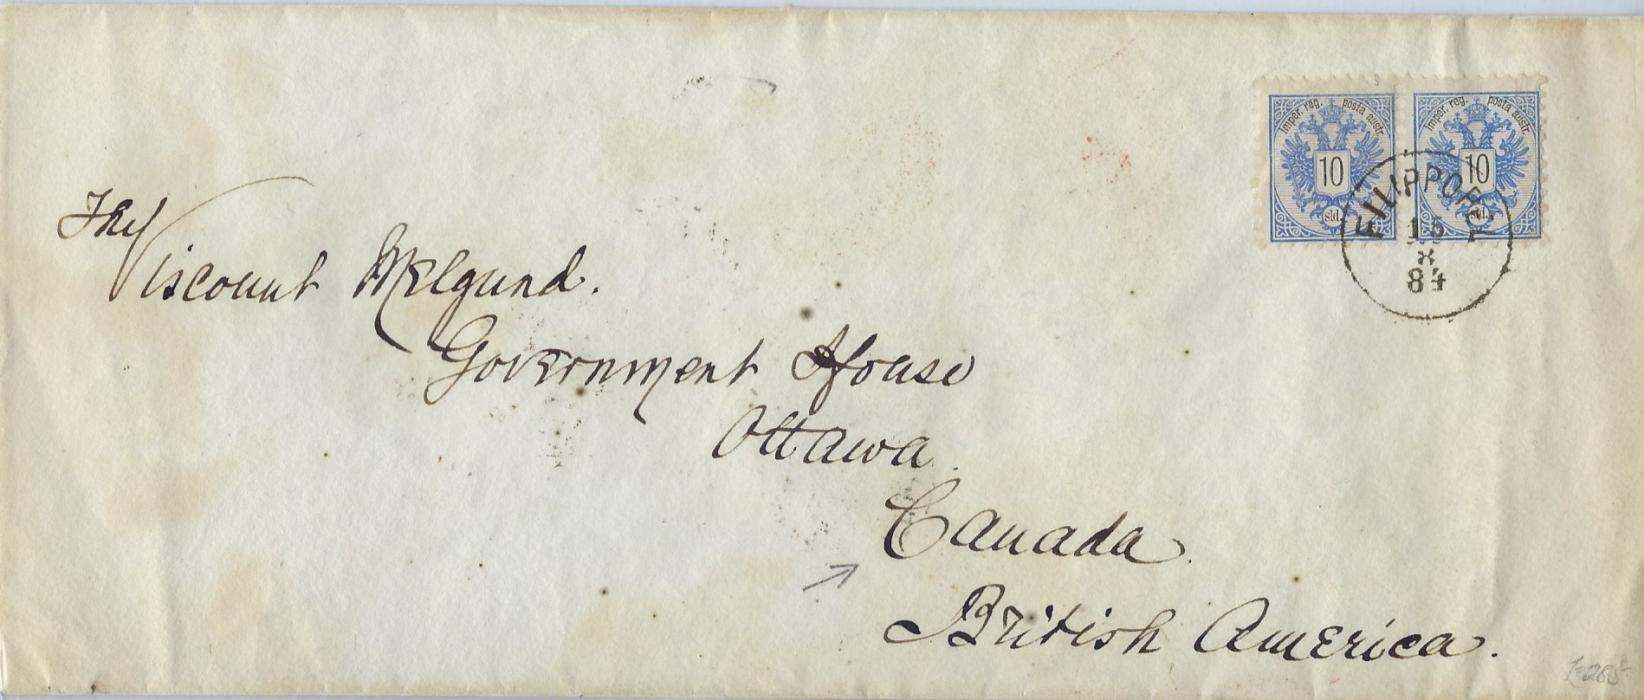 Austrian Levant (Bulgaria) 1884 (15.8.) cover to Government House, Ottawa, Canada franked pair 10sld., perf 9½ tied Filippopel cds, reverse with Constantinopel and London transits plus arrival cds.